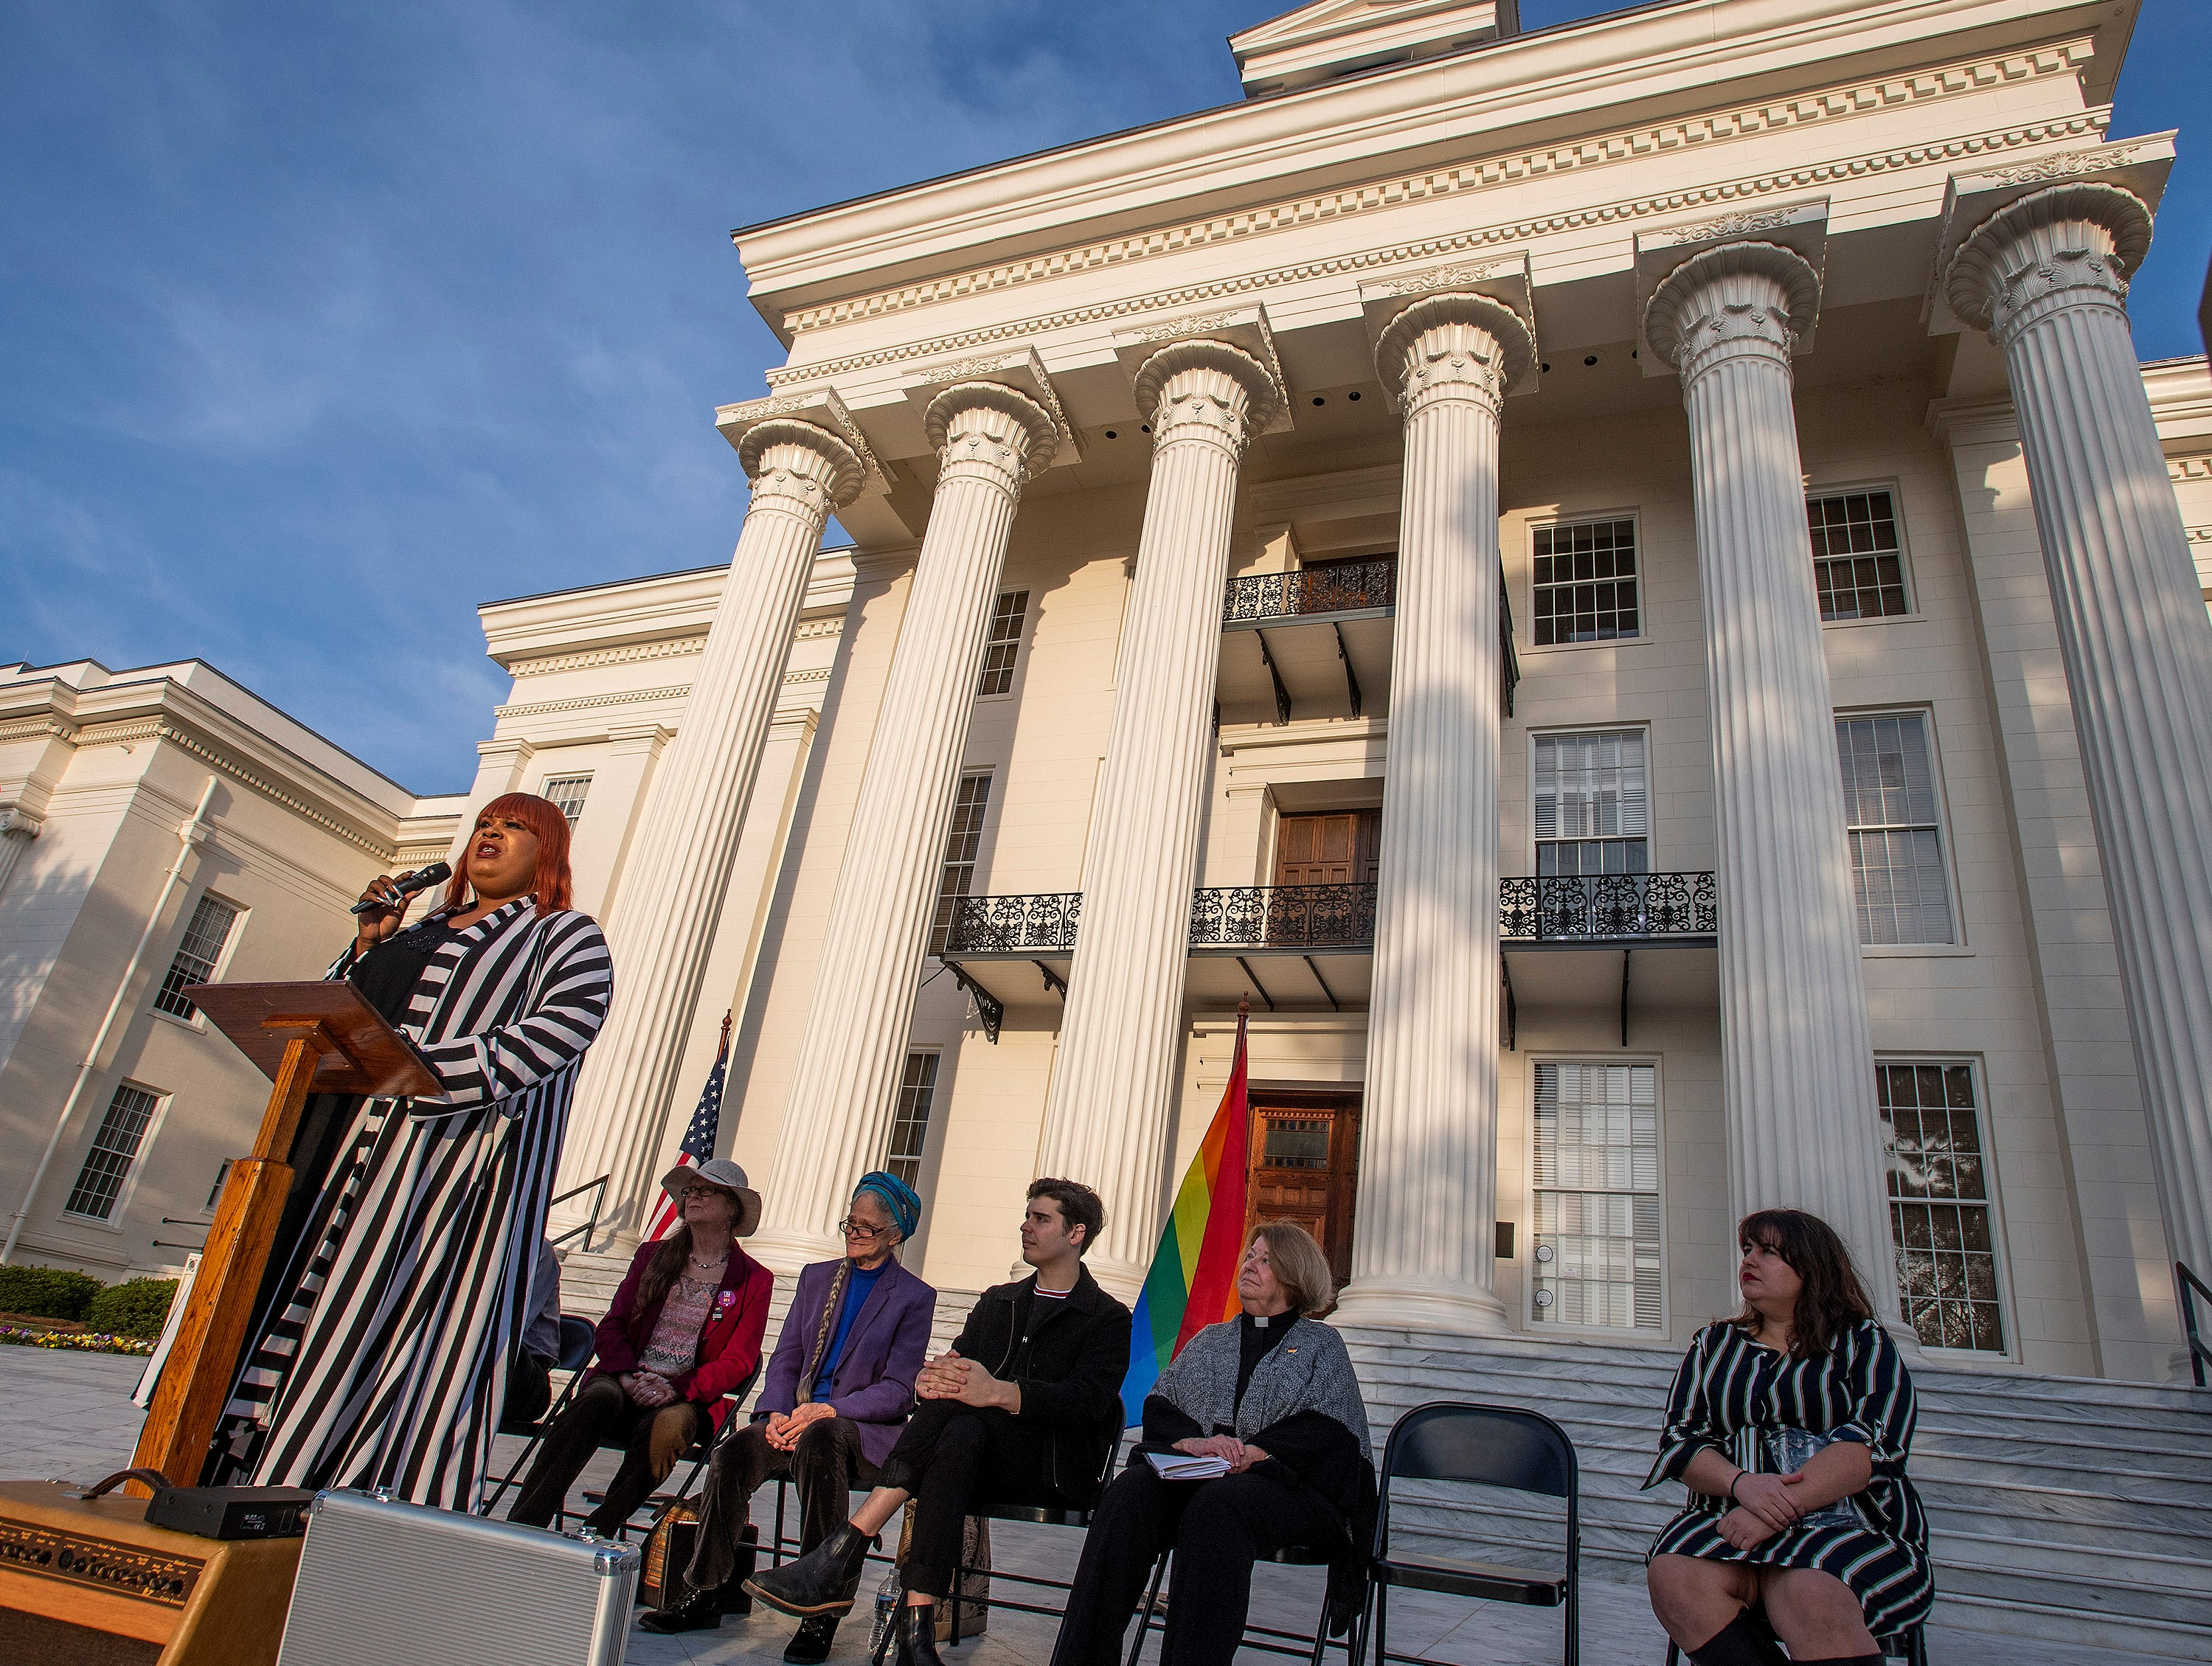 Doroneisha Duncan - Boyd, of TAKE Birmingham is the keynote speaker during the Vigil for Victims of Hate and Violence held on the state capitol steps in Montgomery, Ala., on Saturday February 16, 2019.